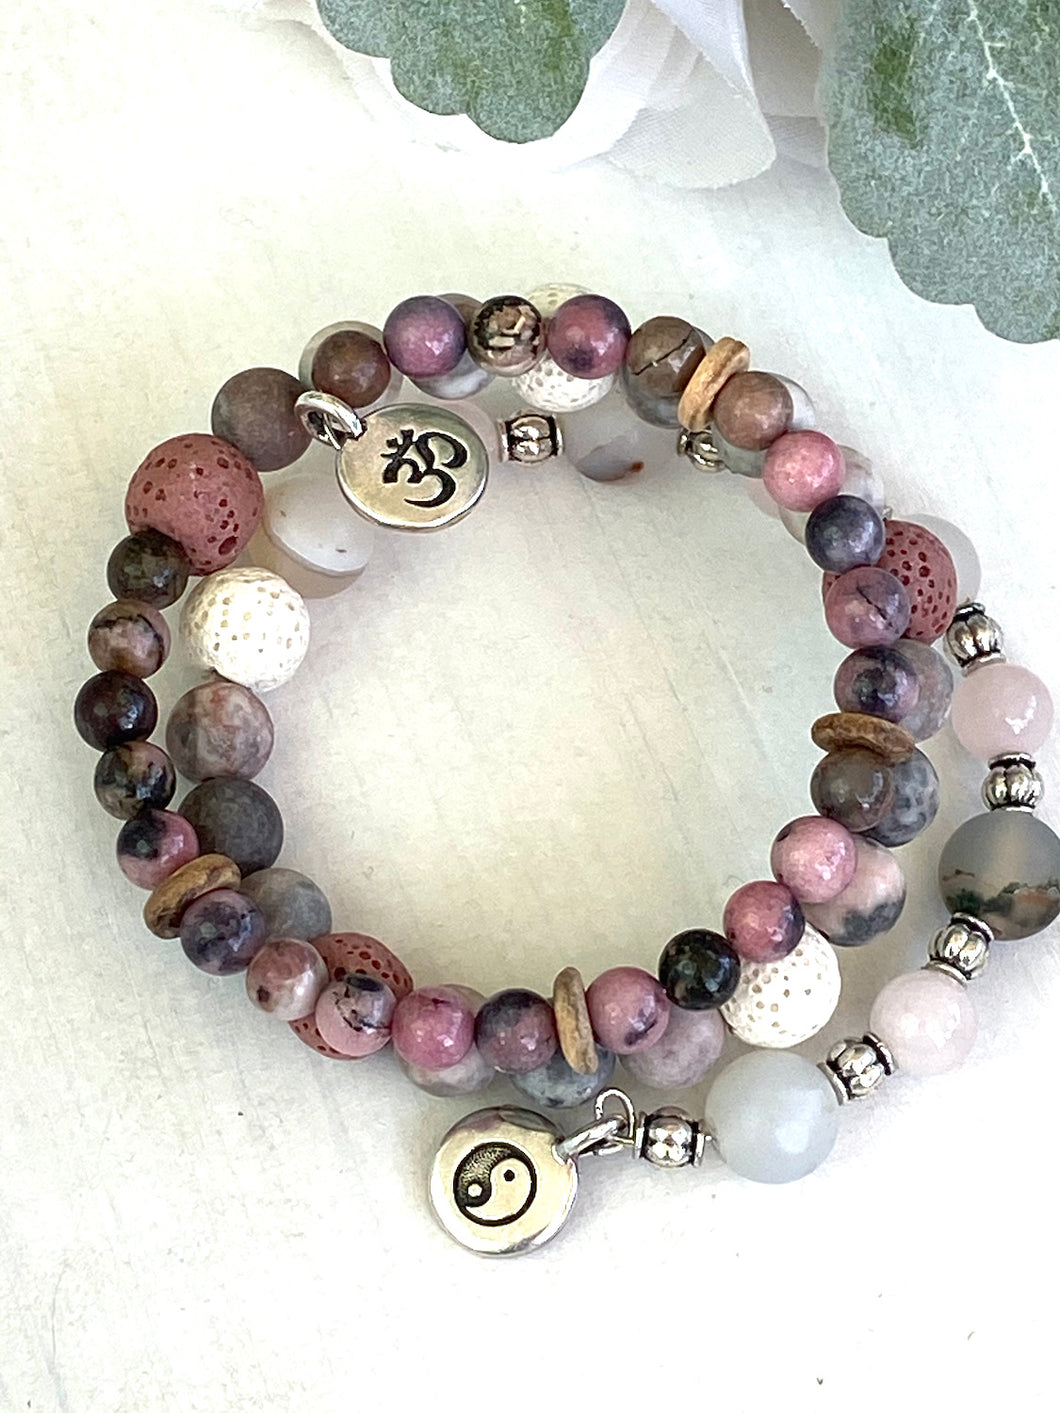 Pink Zebra and Rose Quartz and Sterling Silver Beaded Wrap Bracelet, Memory Wire Bracelet, Gemstone Cuff Bracelet, Yoga Style Jewelry, Beaded Bracelet, Boho Bracelet, Yin and Yang Om Memory Wire Bracelet